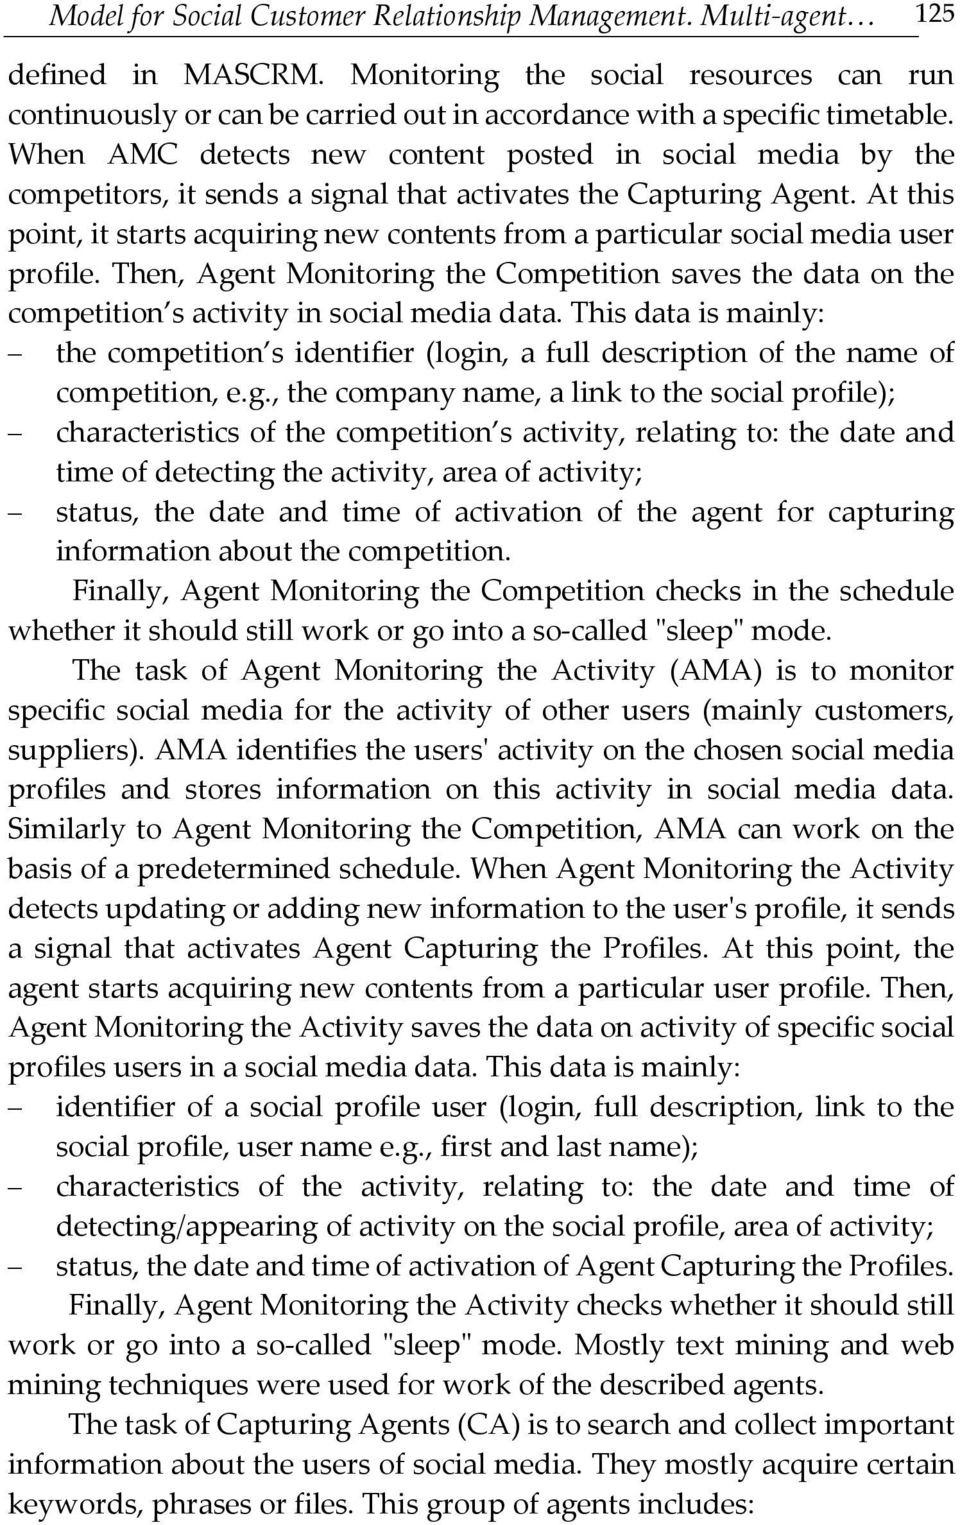 When AMC detects new content posted in social media by the competitors, it sends a signal that activates the Capturing Agent.